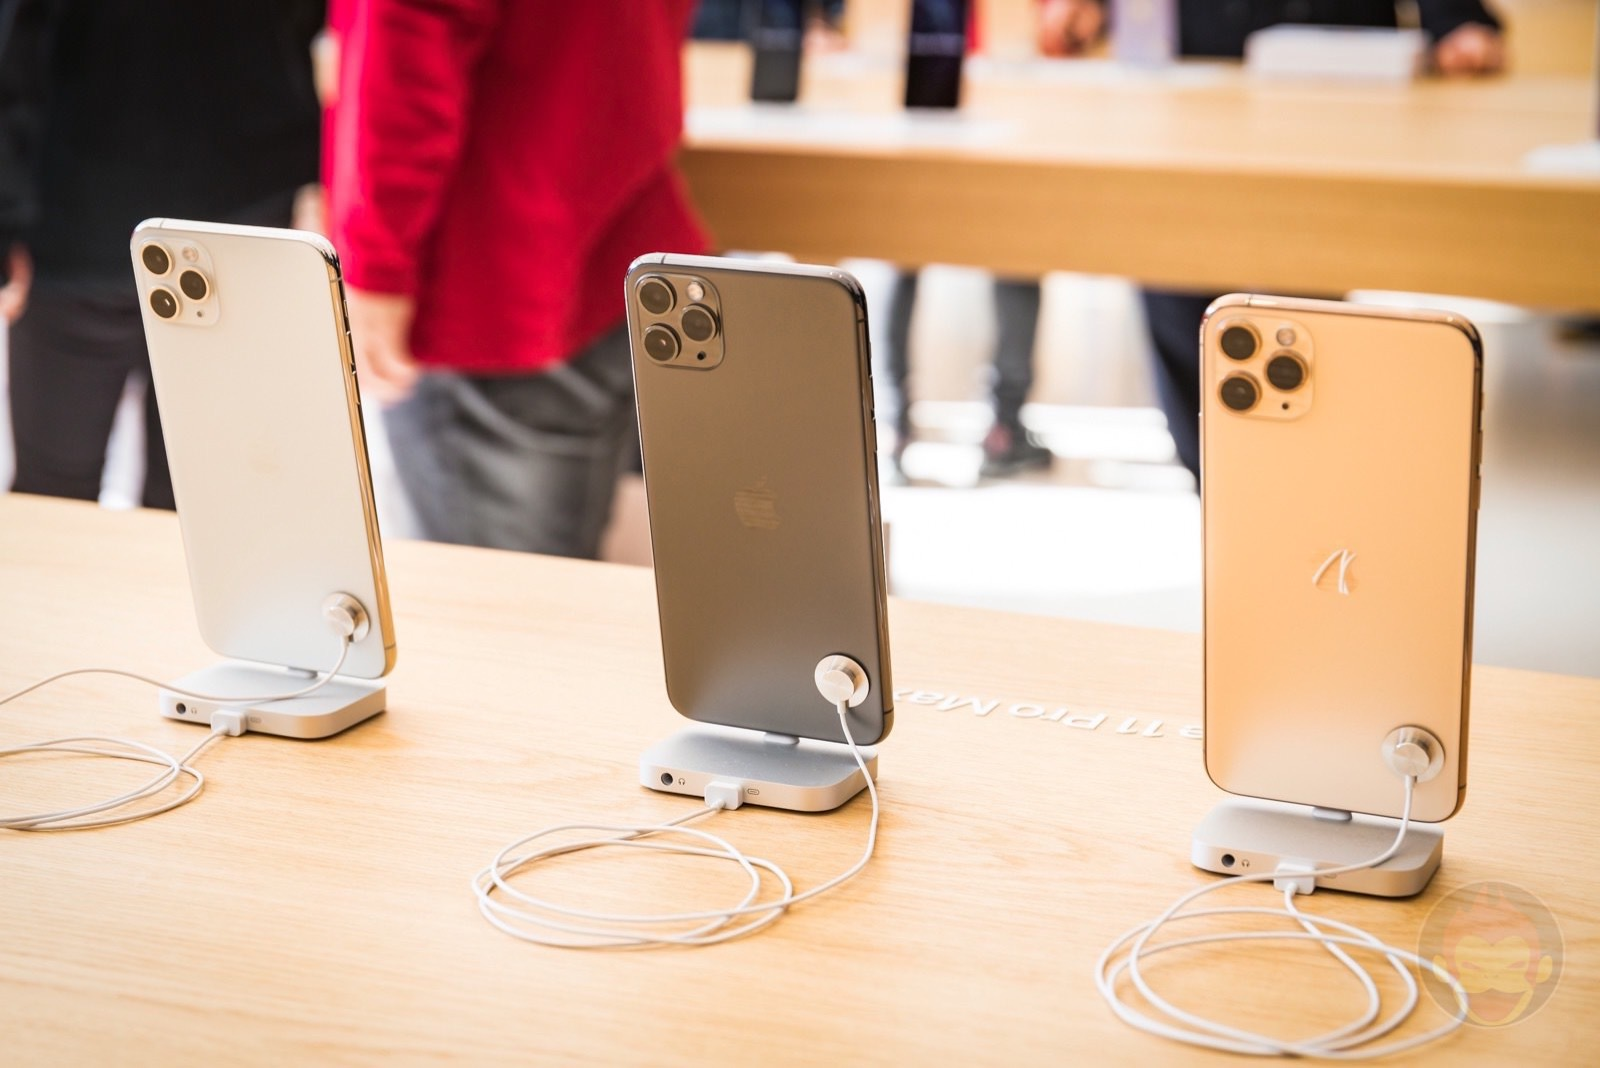 Iphone 11 pro at apple store 01